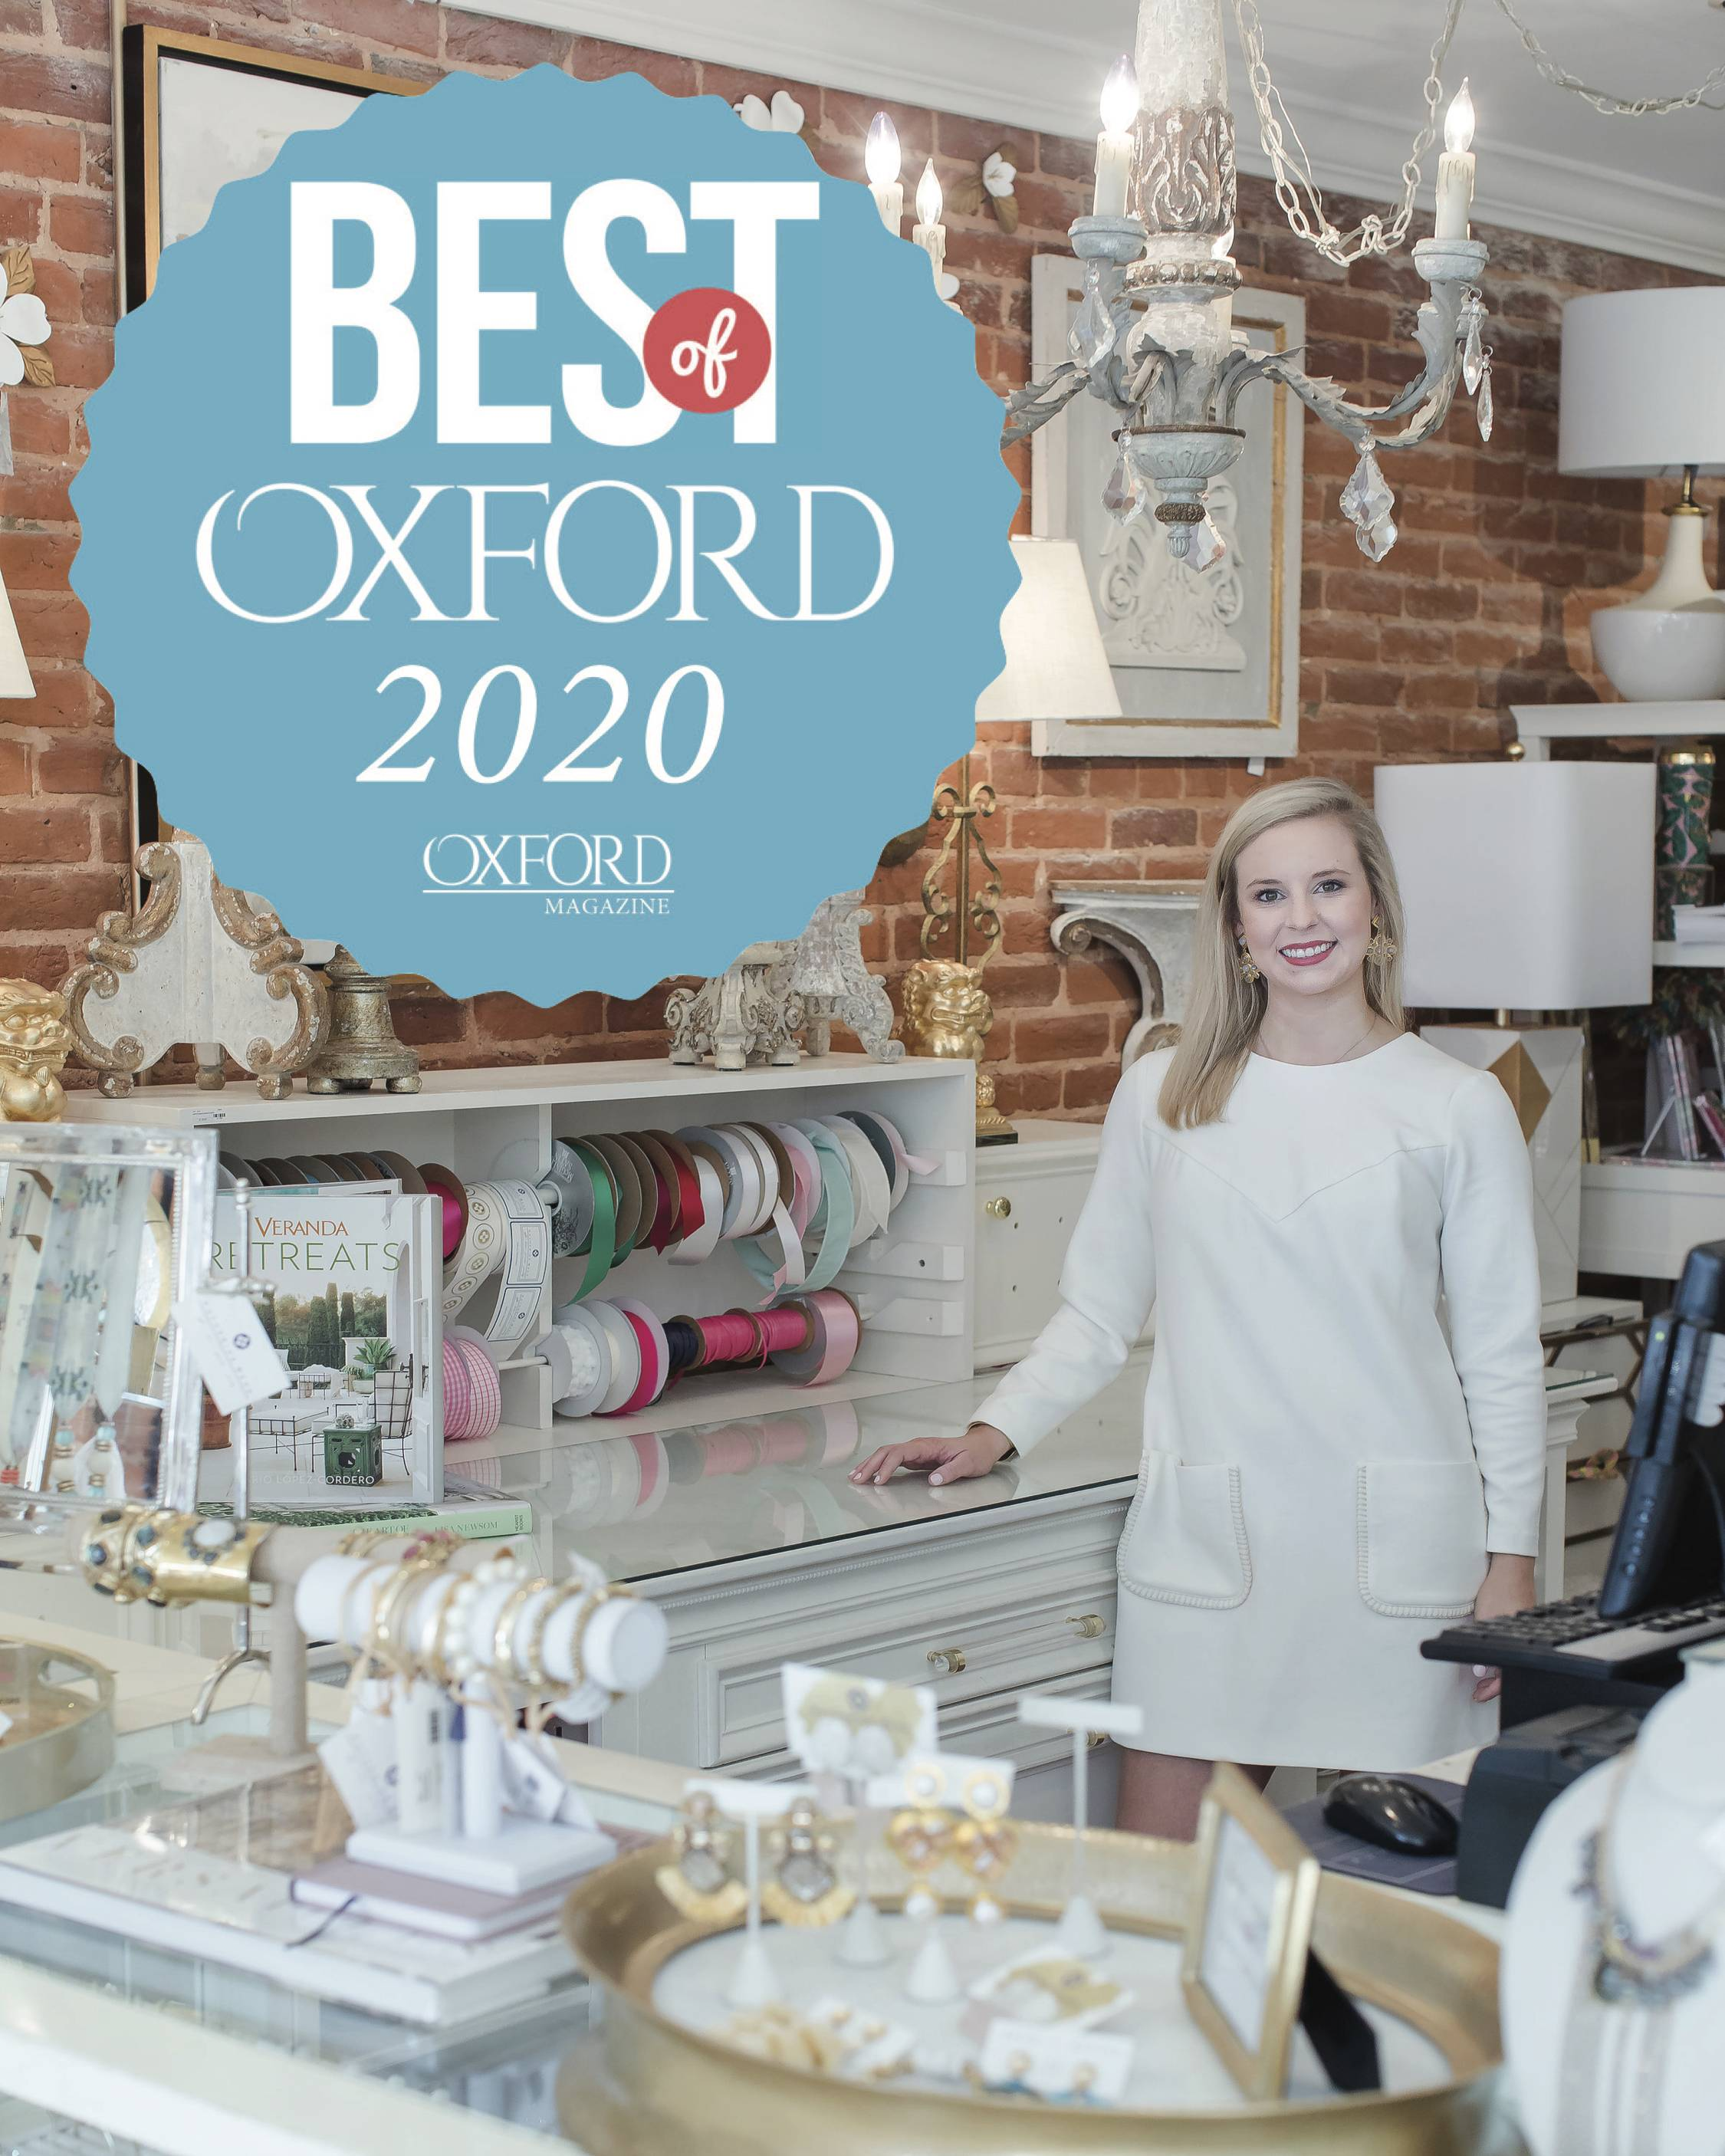 Voted Oxford's Best Gift Store!